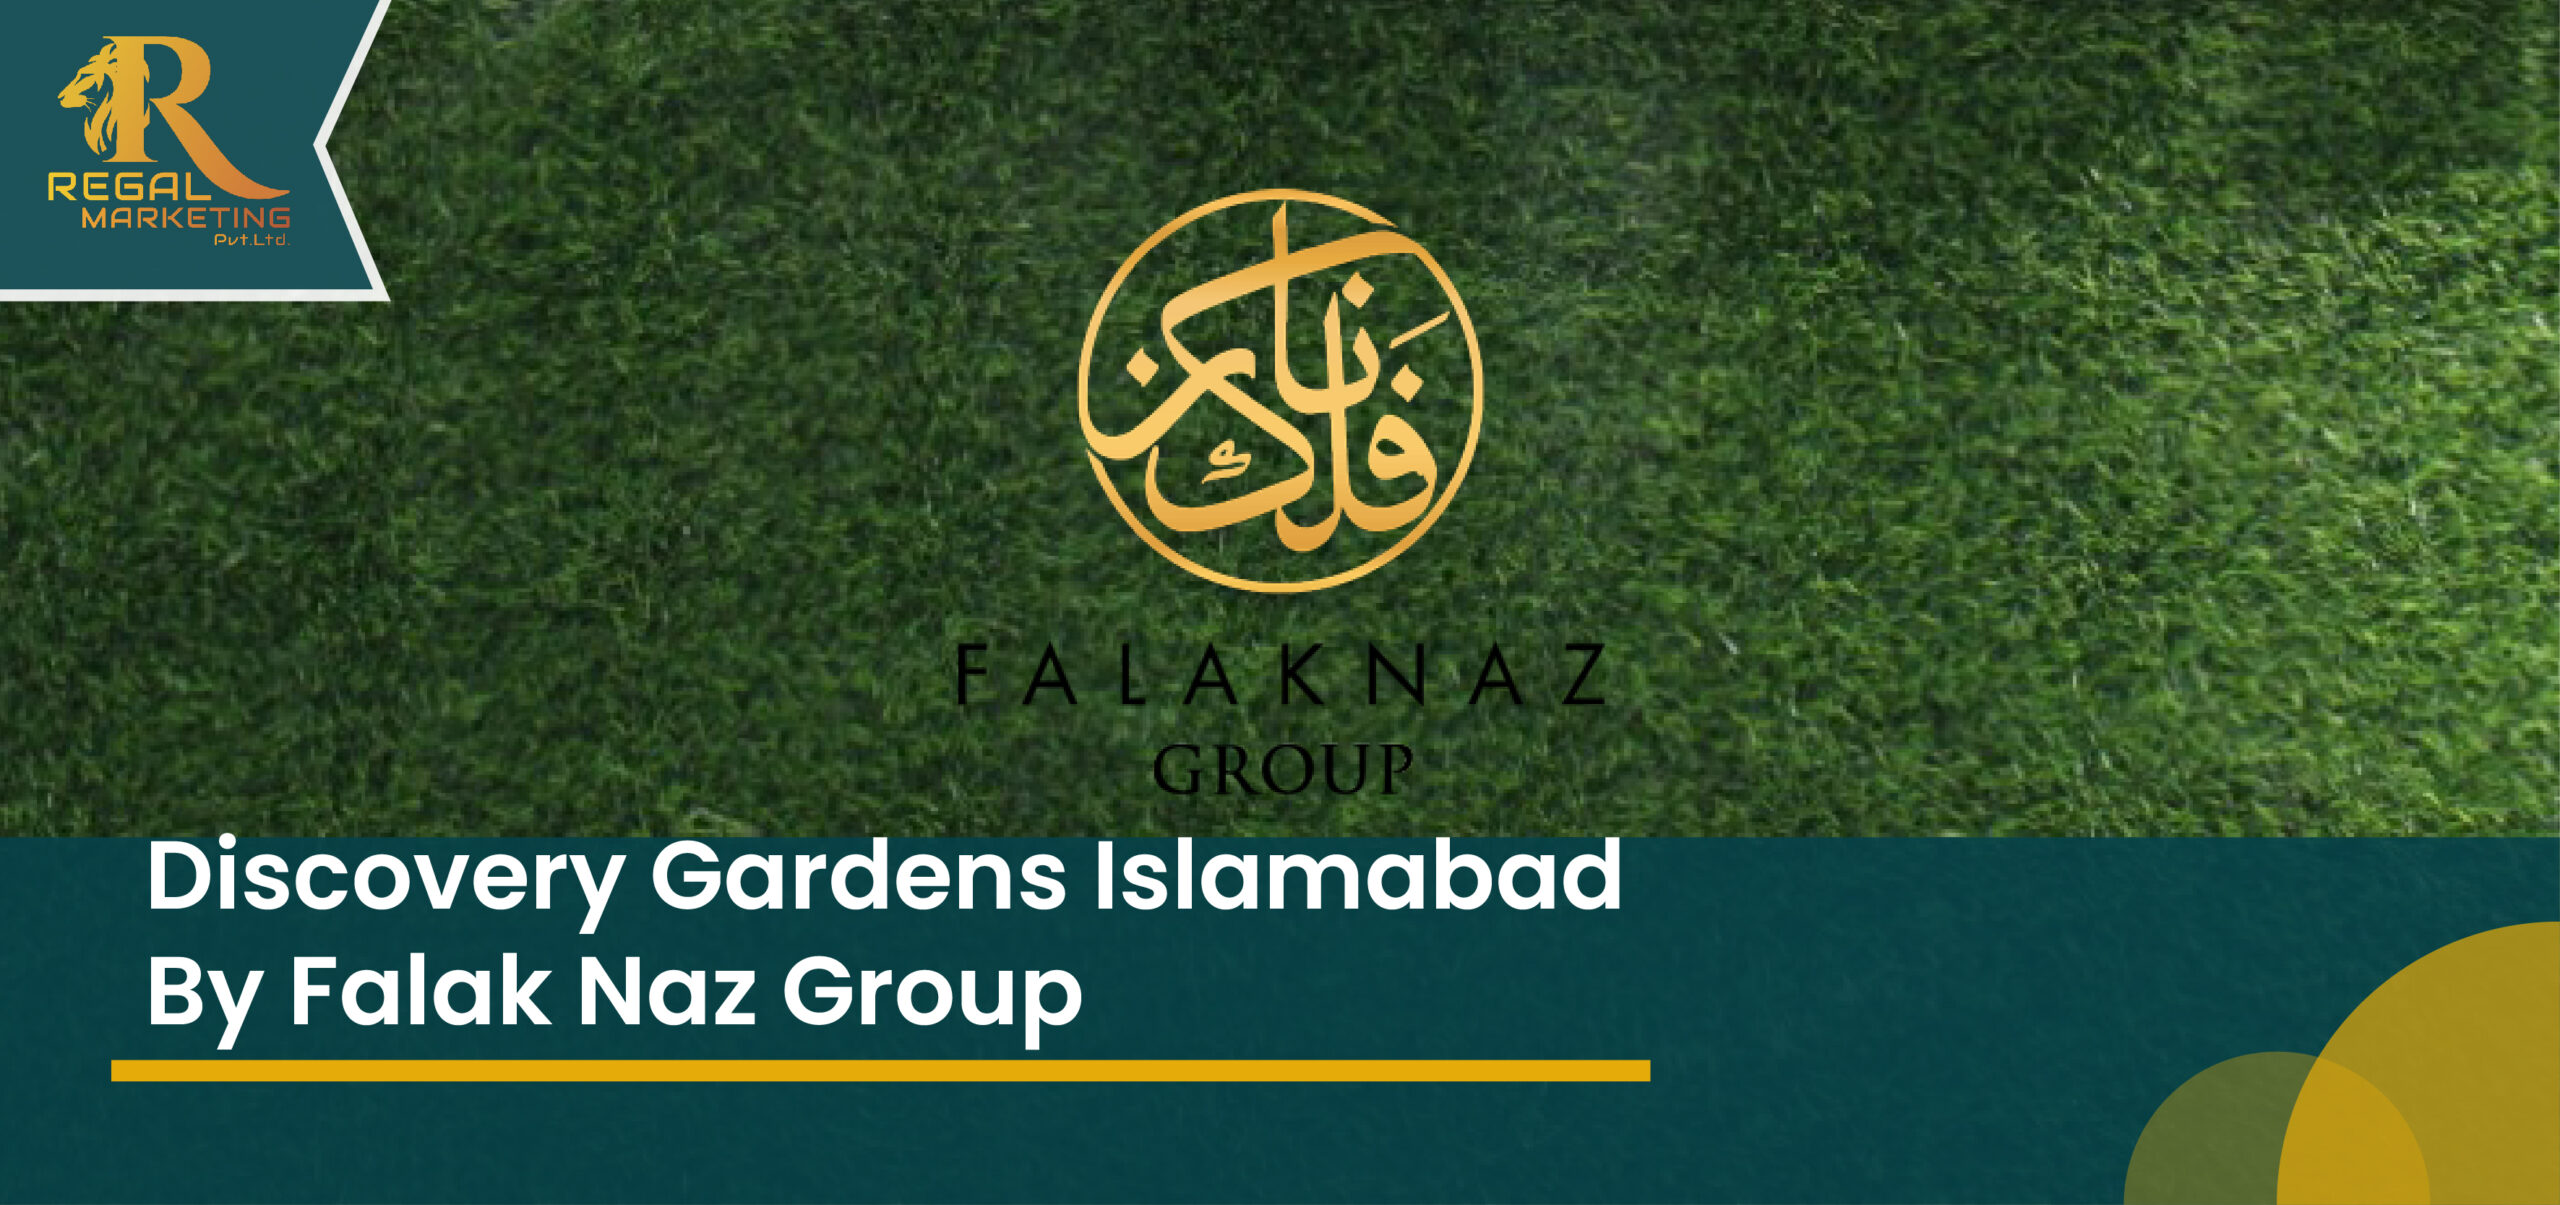 Discovery Gardens Isb by Falak Naz Group New